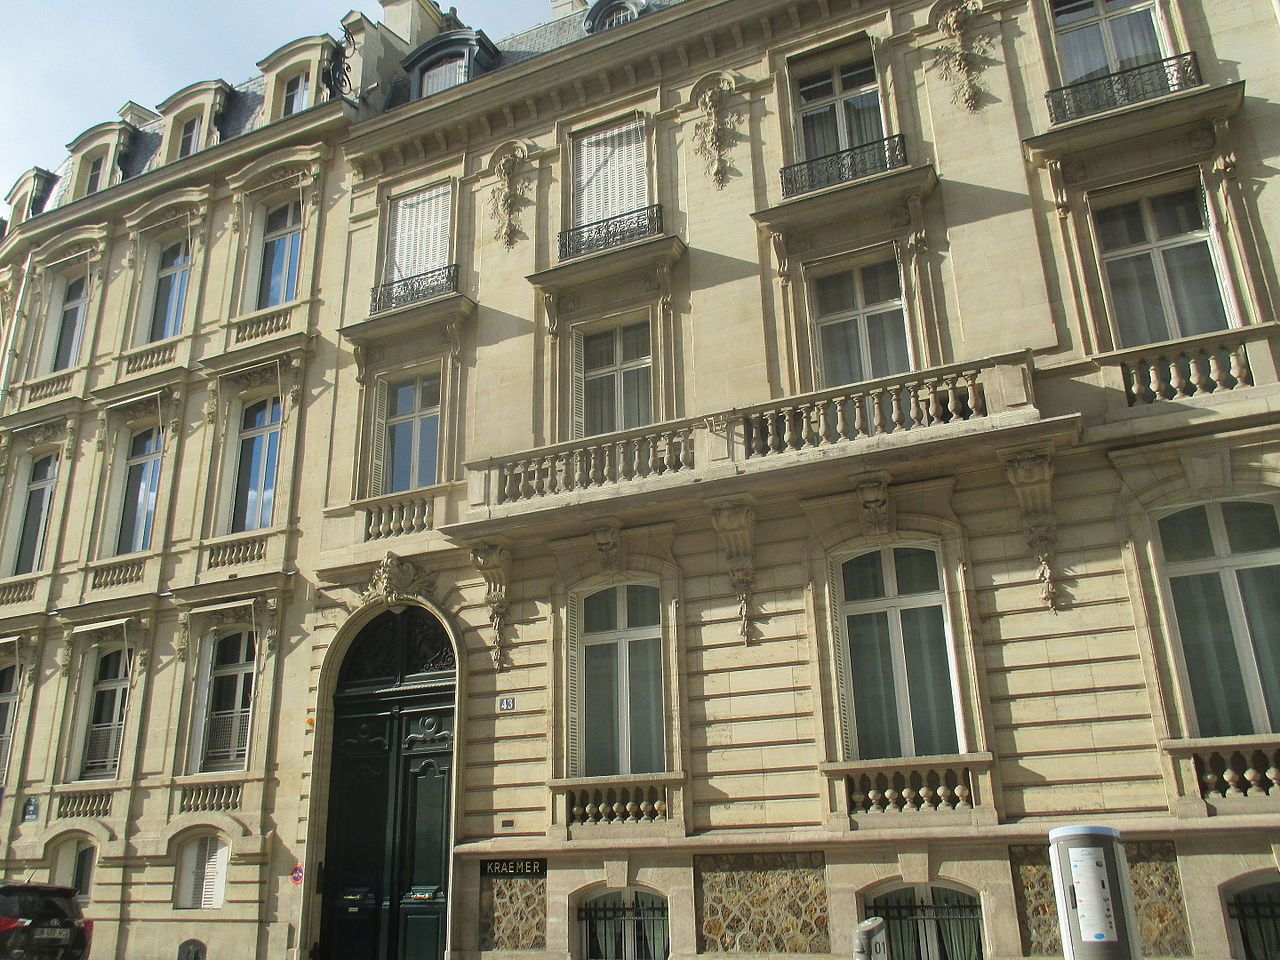 Kraemer Gallery, Paris